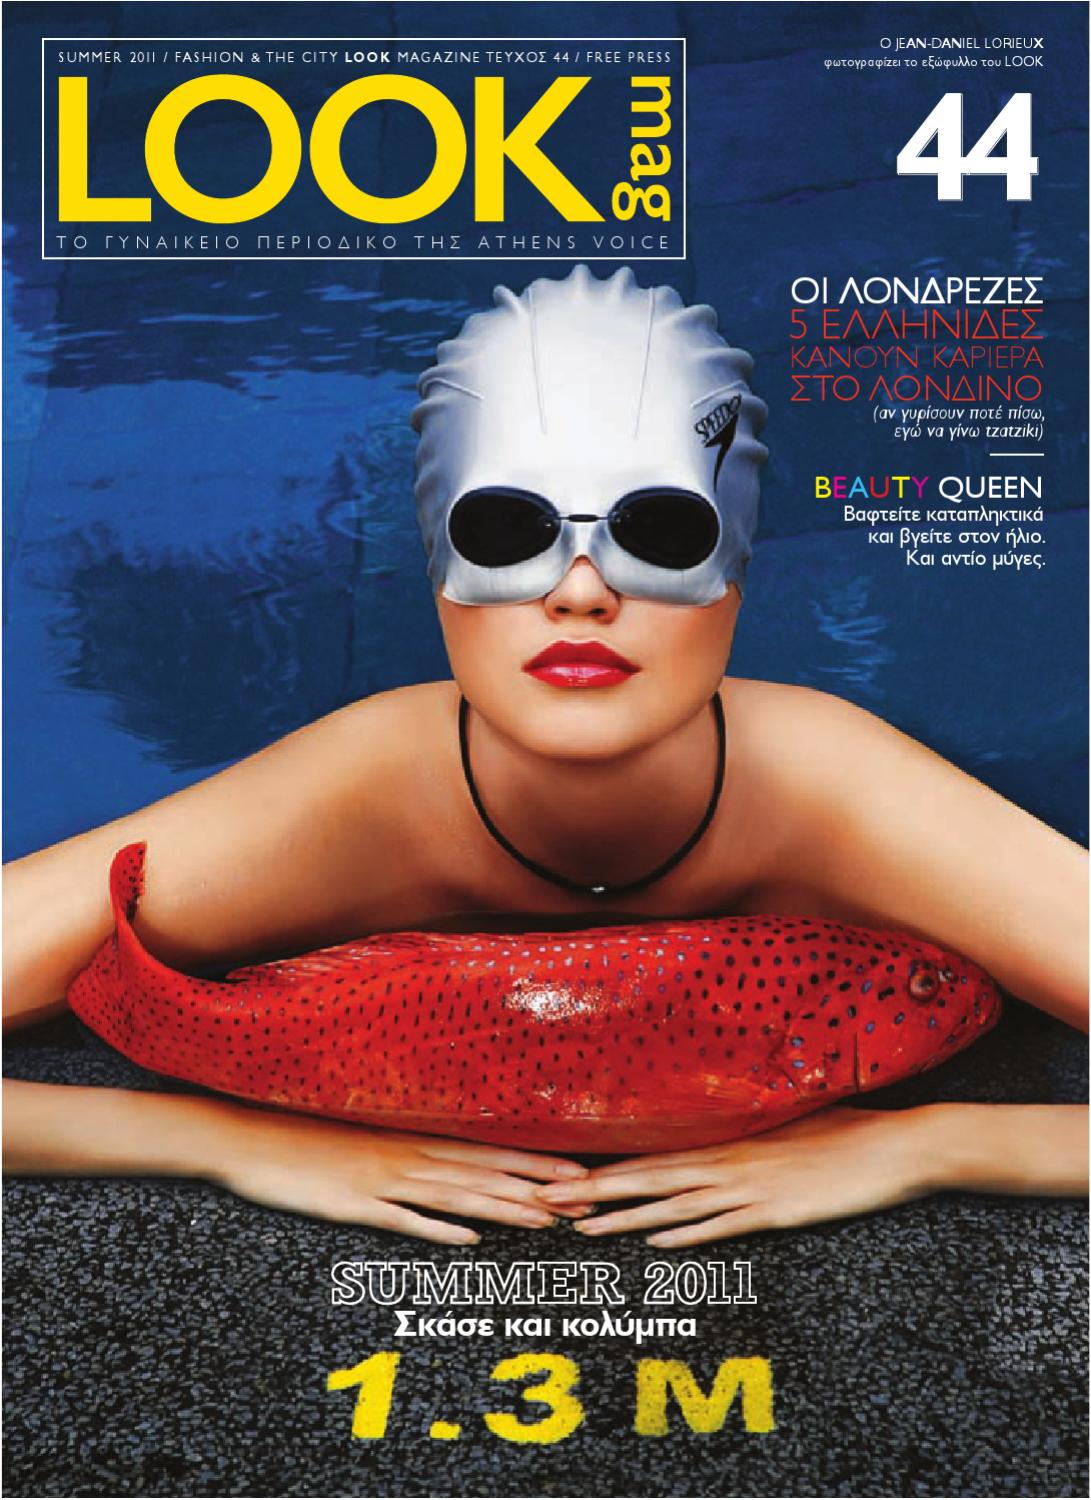 db6a261c91a LOOK Magazine 44 by Athens Voice - issuu